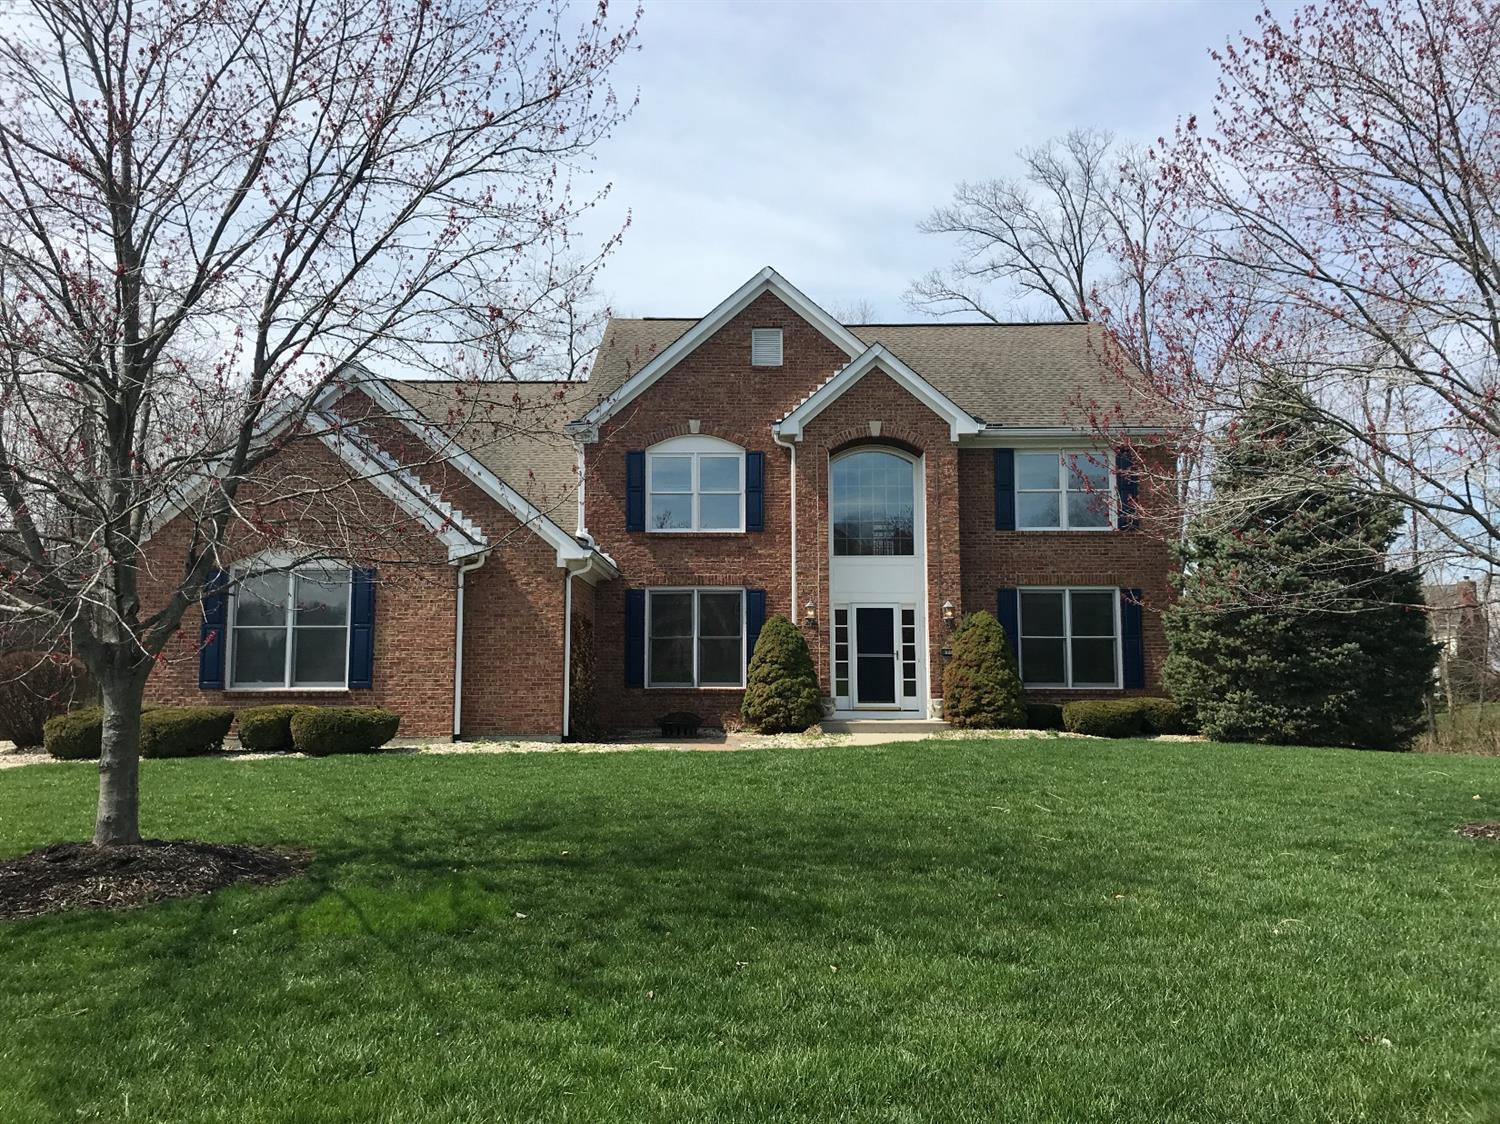 6718 Deerview Dr Miami Twp. (East), OH